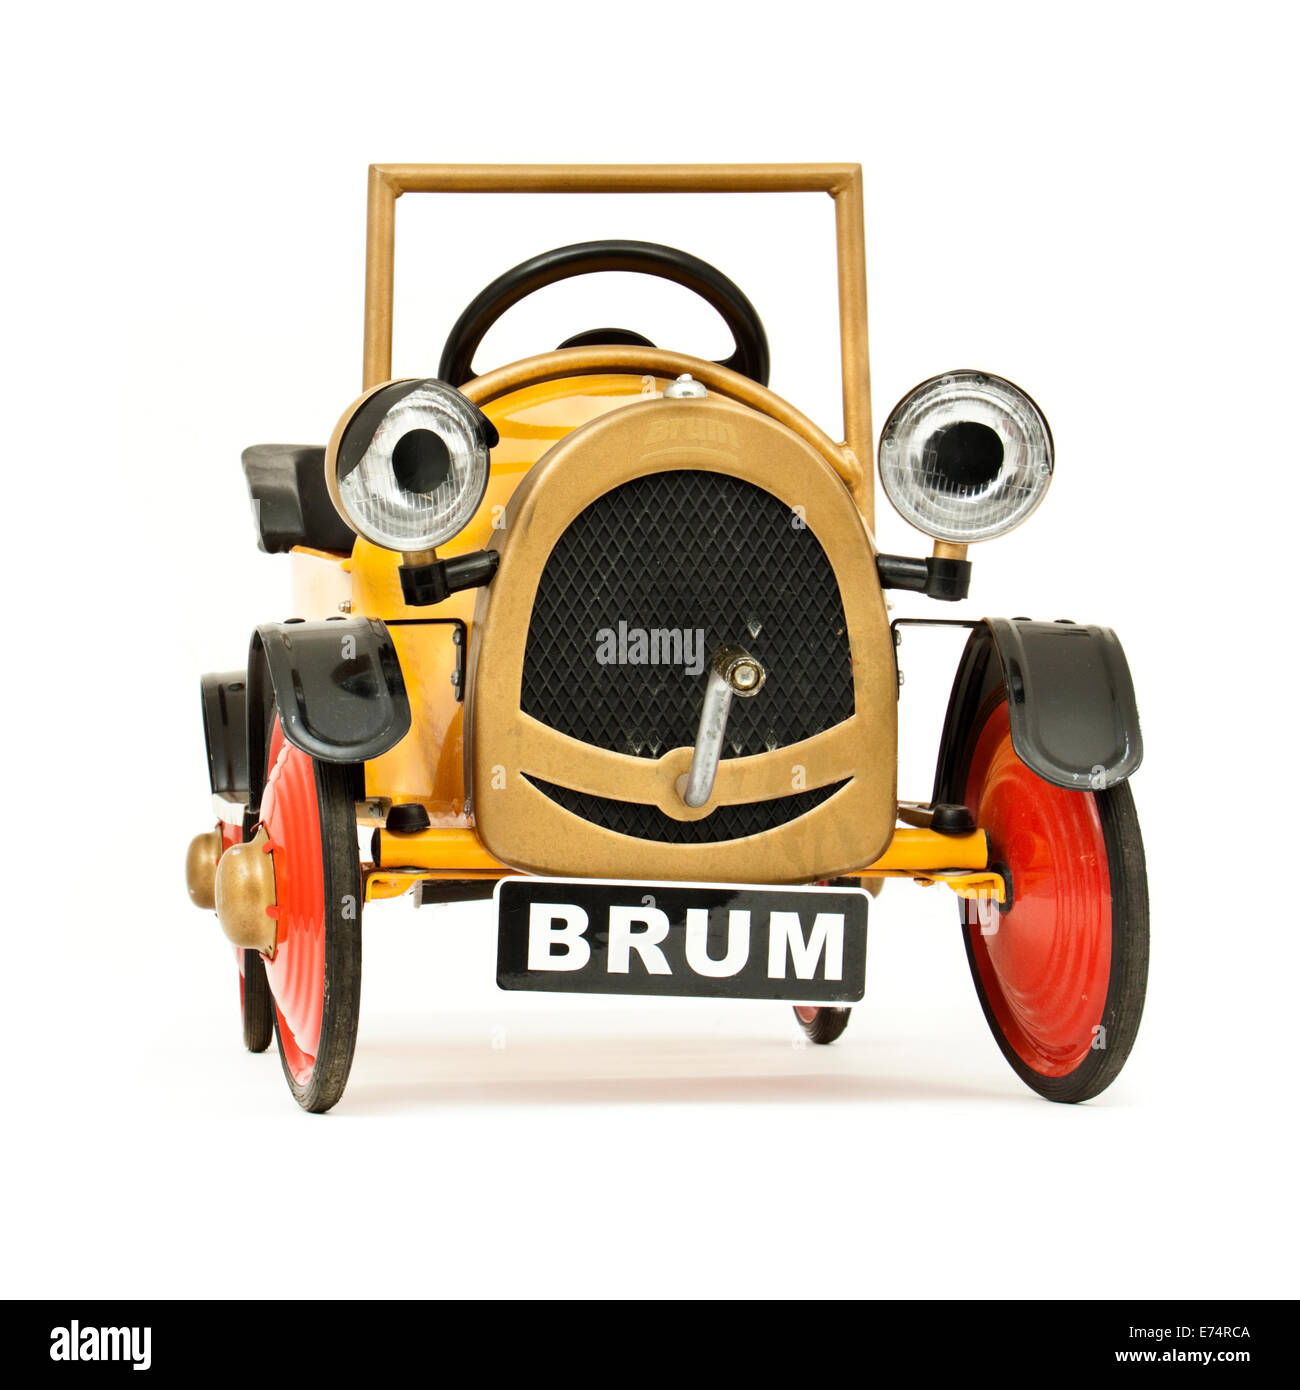 Famous Tv Character Brum In Bourton On The Water Cotswolds Uk